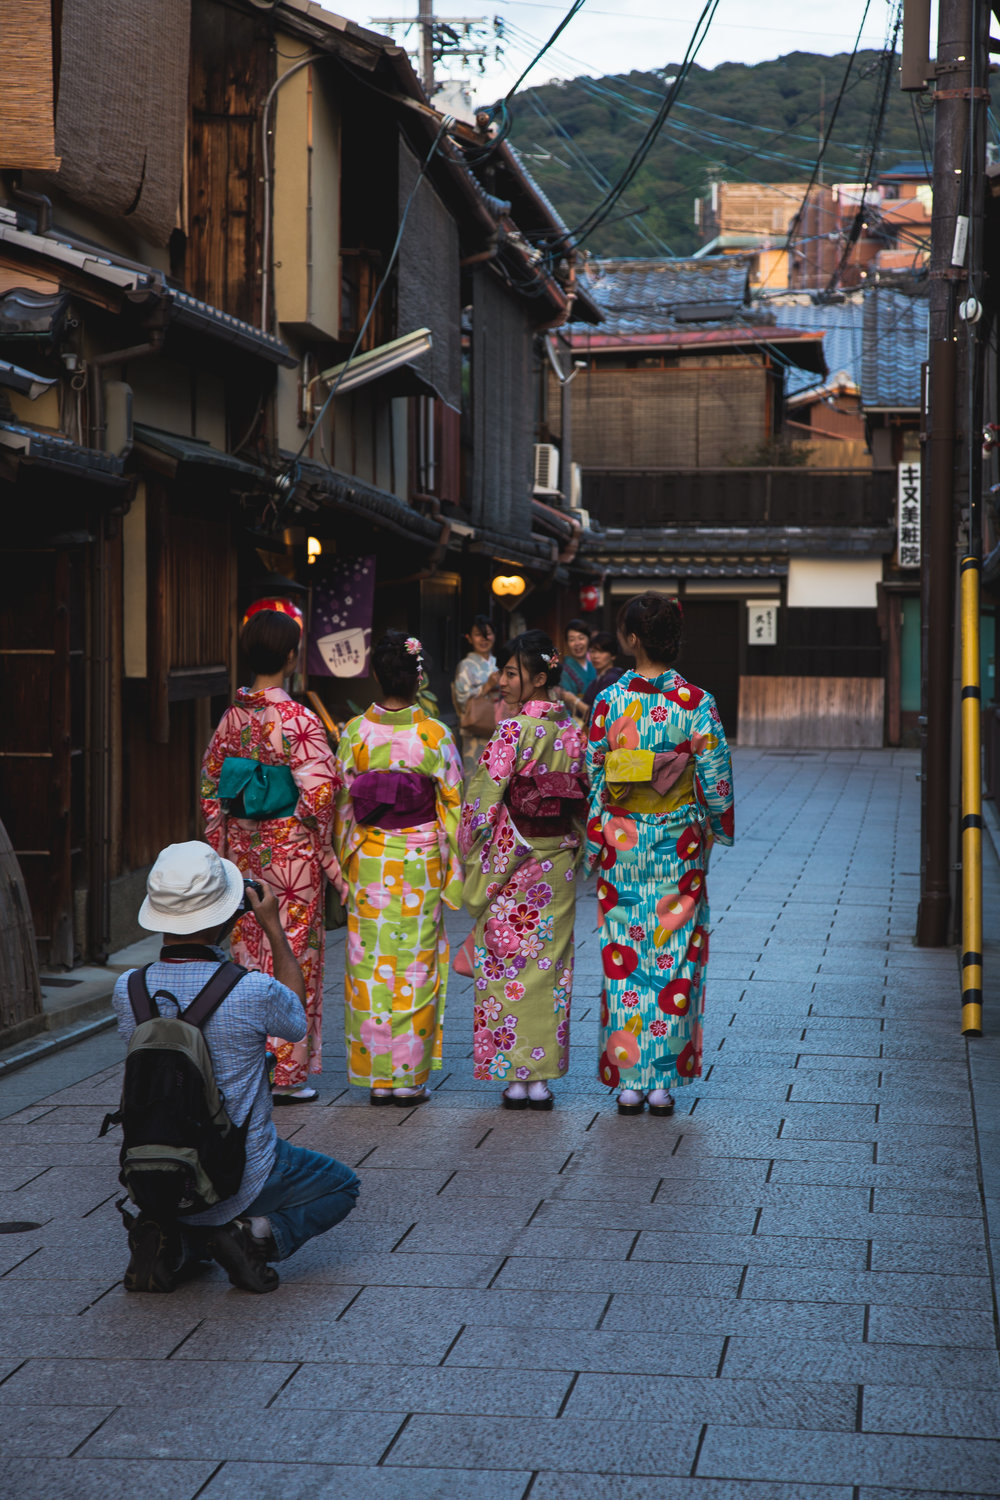 Young teenagers living out the geisha fantasy, and experiencing minor celebrity, in Gion